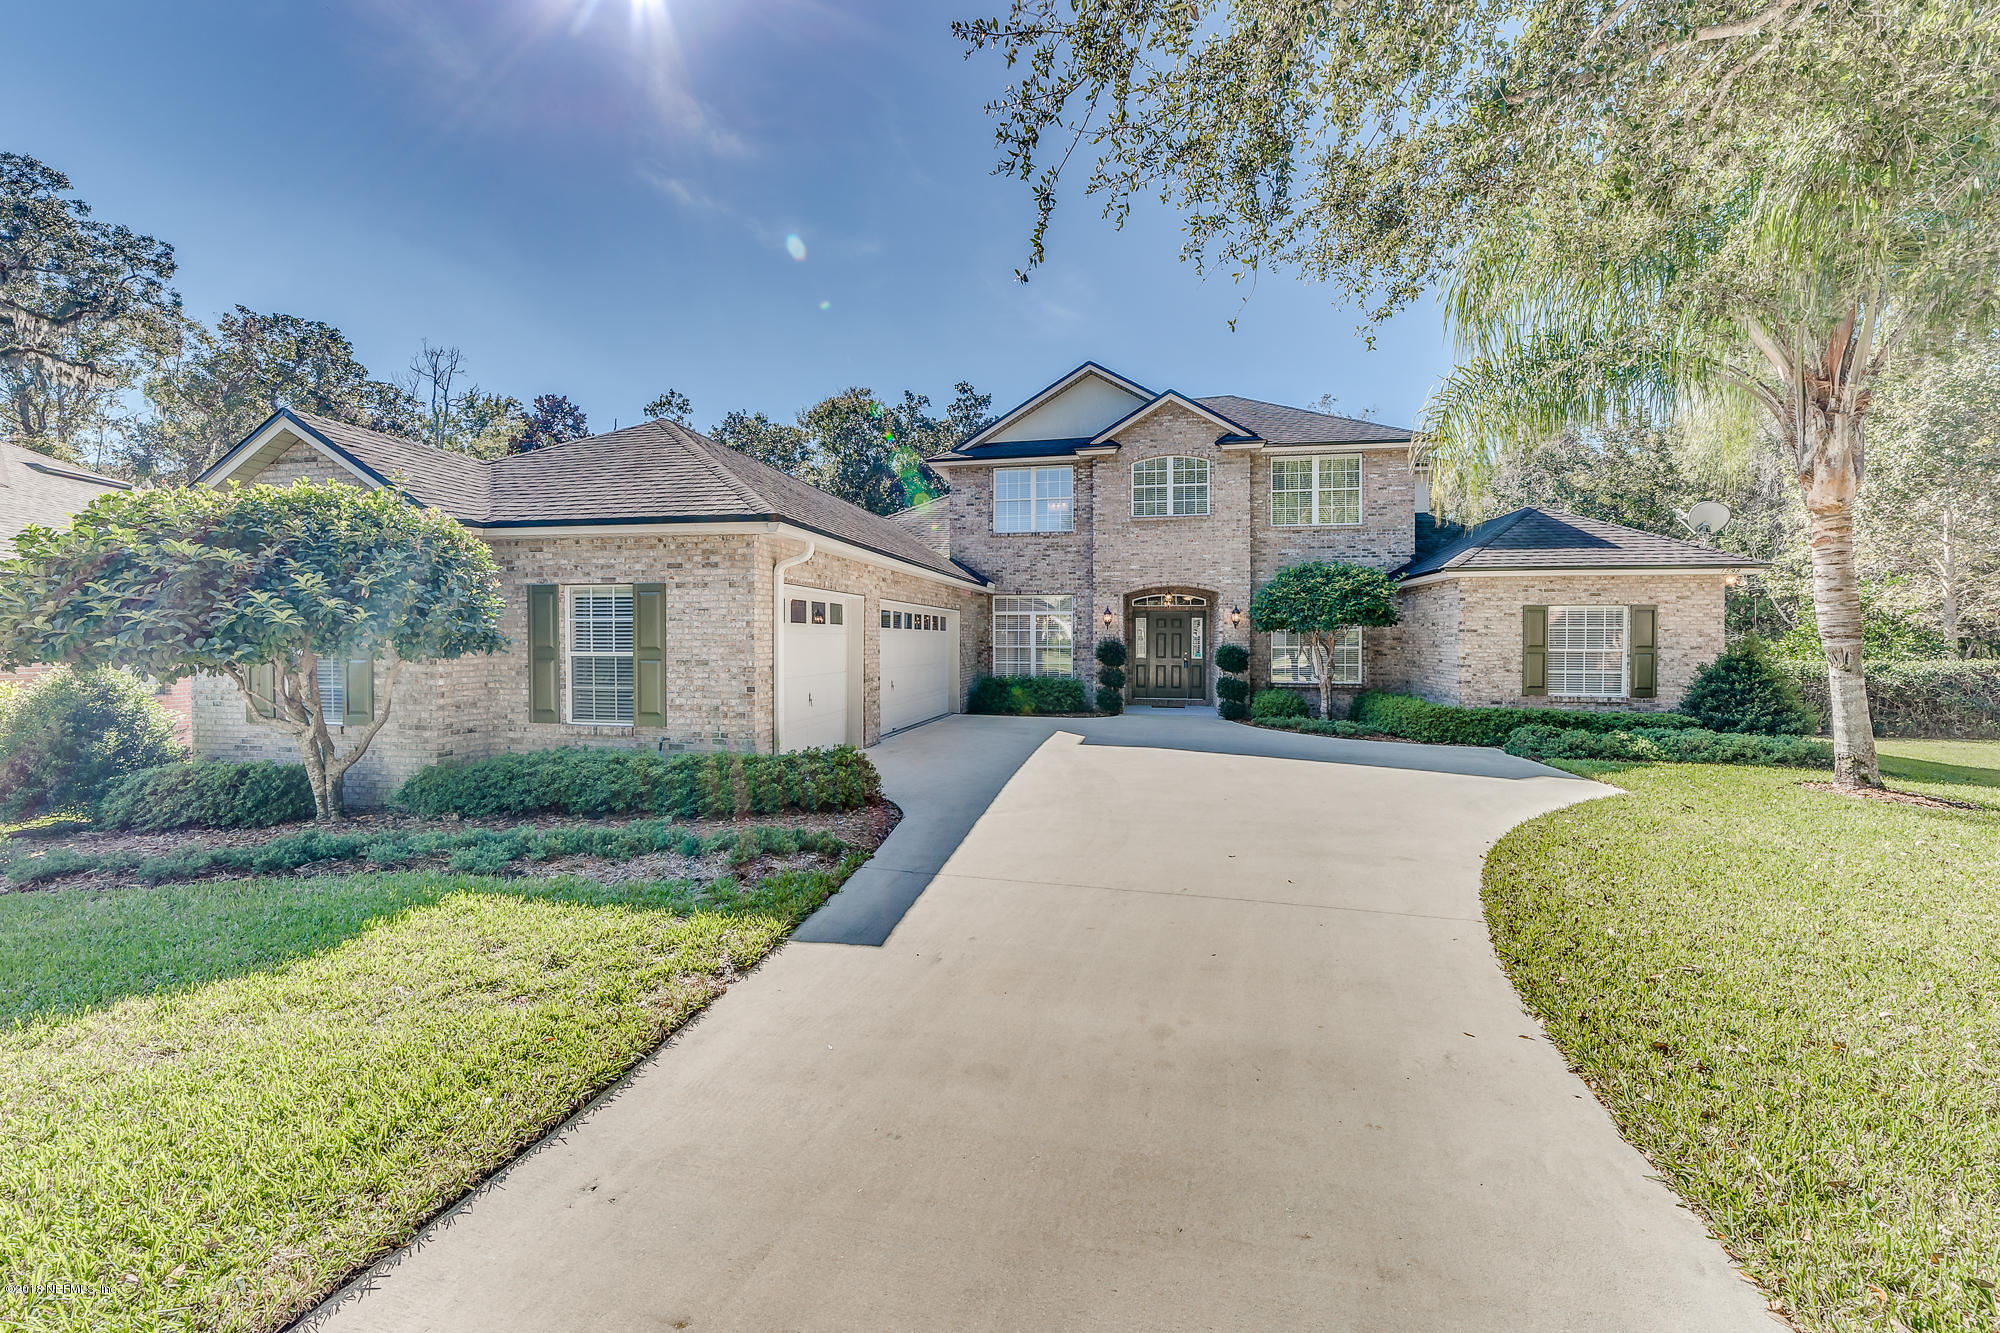 1598 MAJESTIC VIEW, ORANGE PARK, FLORIDA 32003, 5 Bedrooms Bedrooms, ,4 BathroomsBathrooms,Residential - single family,For sale,MAJESTIC VIEW,968179